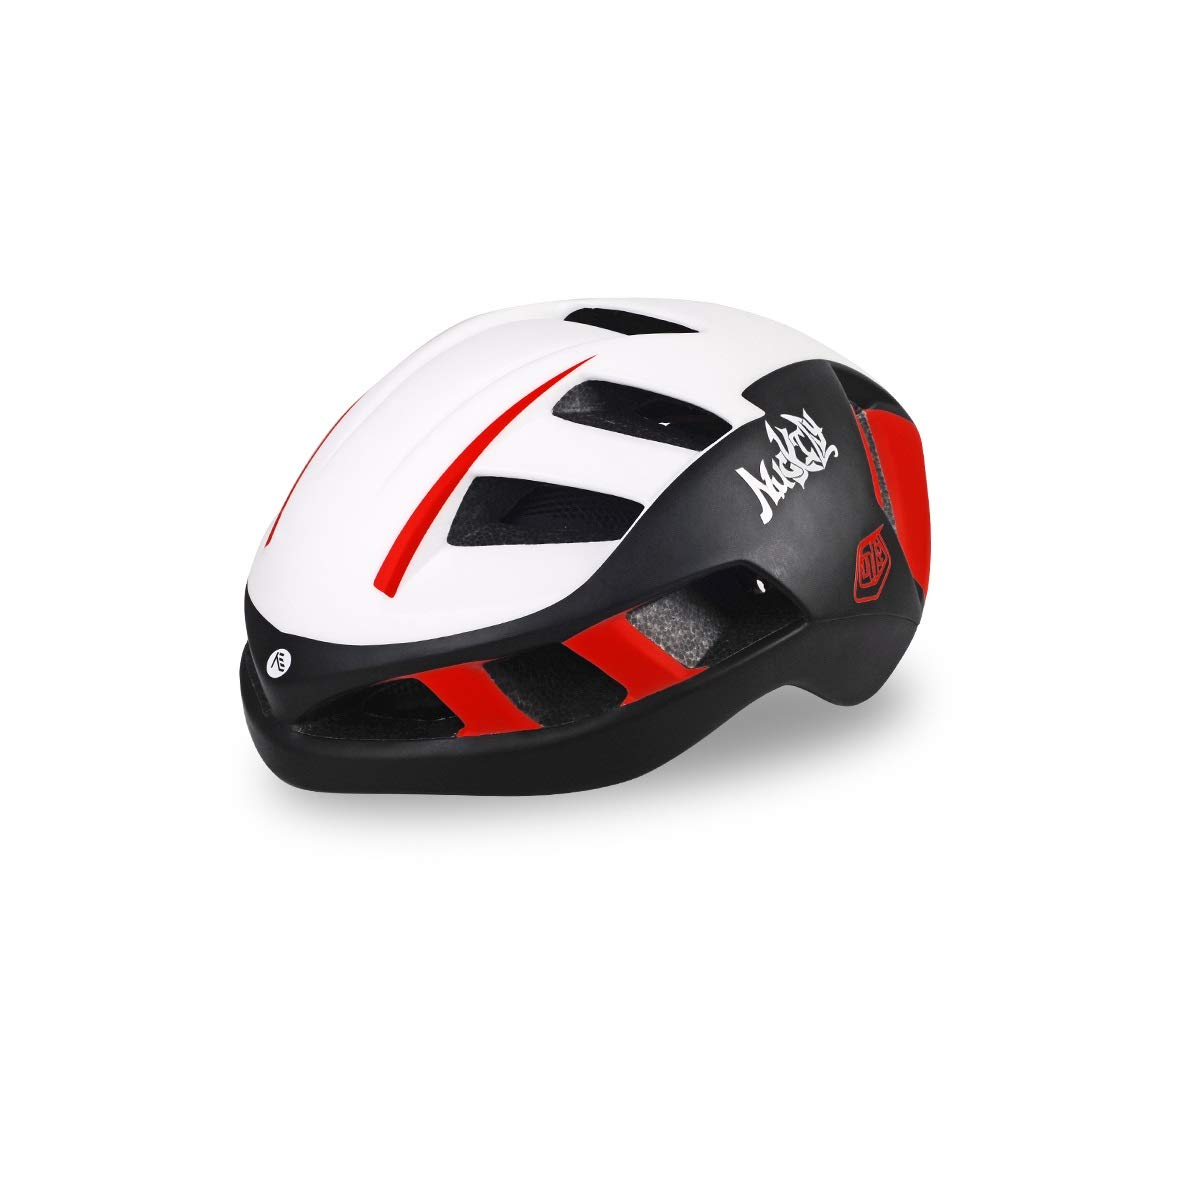 8hawoenju Bike Helmet with in-Molded Reinforcing Skeleton for Added Protection - Adult Size, Comfortable, Lightweight, Breathable (Color : White, Size : L)